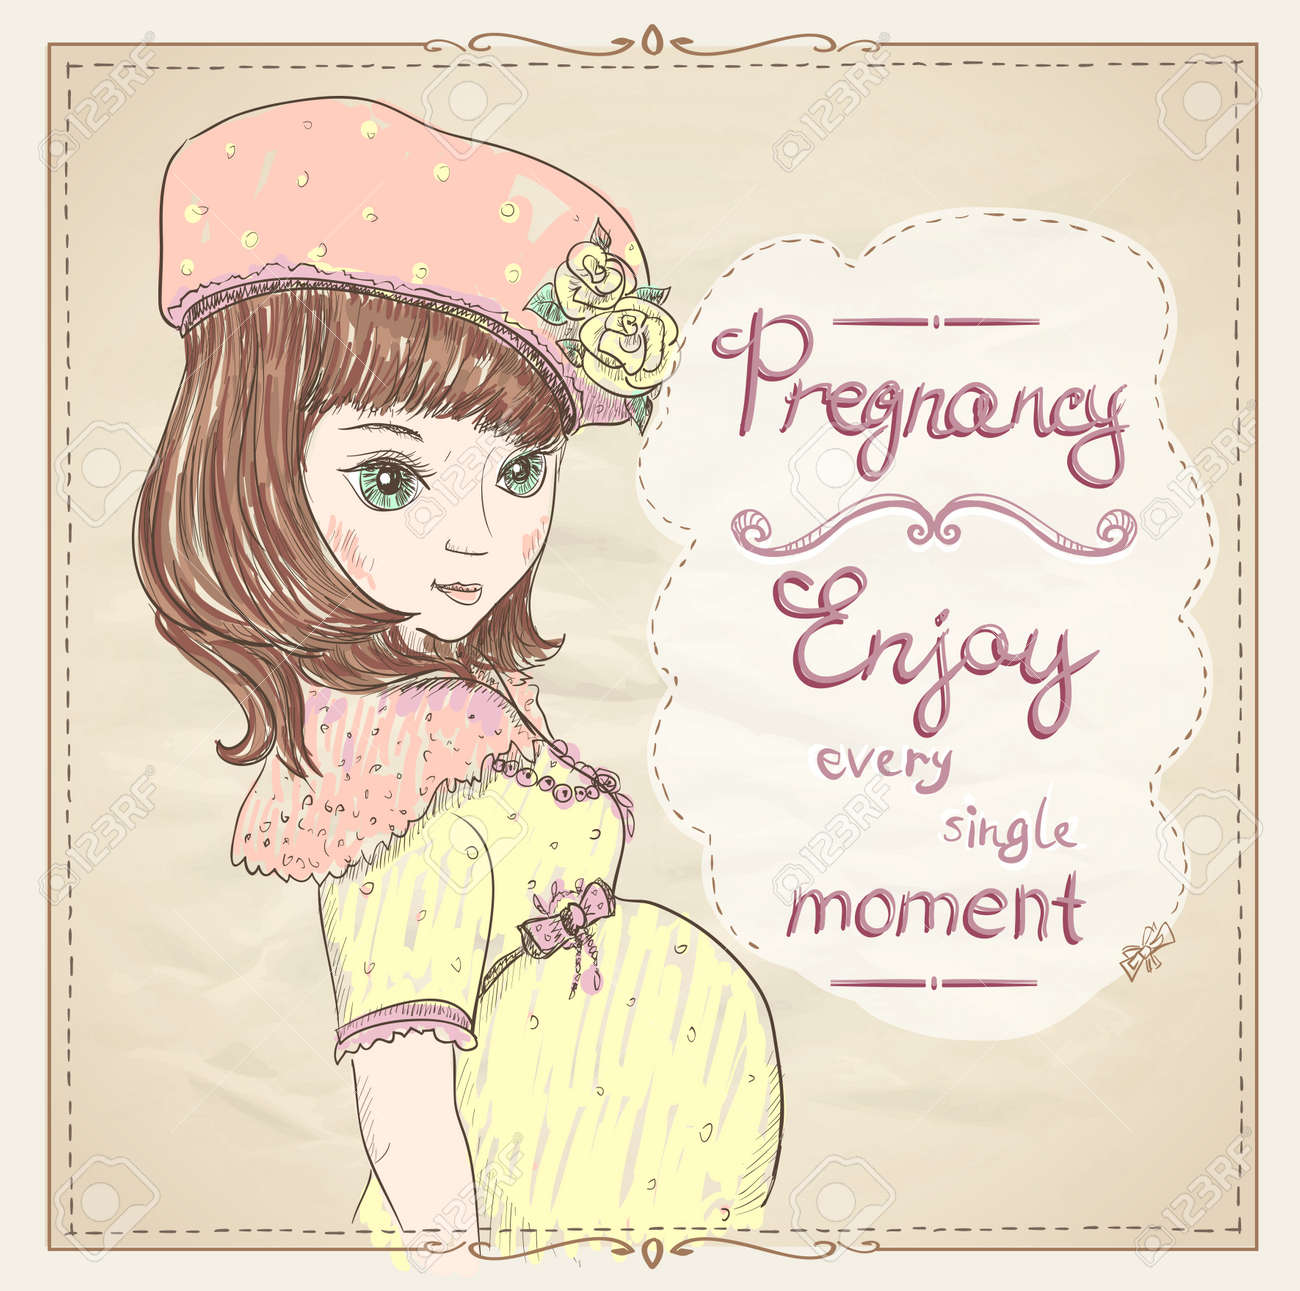 Pregnancy quotes card. Enjoy every single moment, graphic portrait..